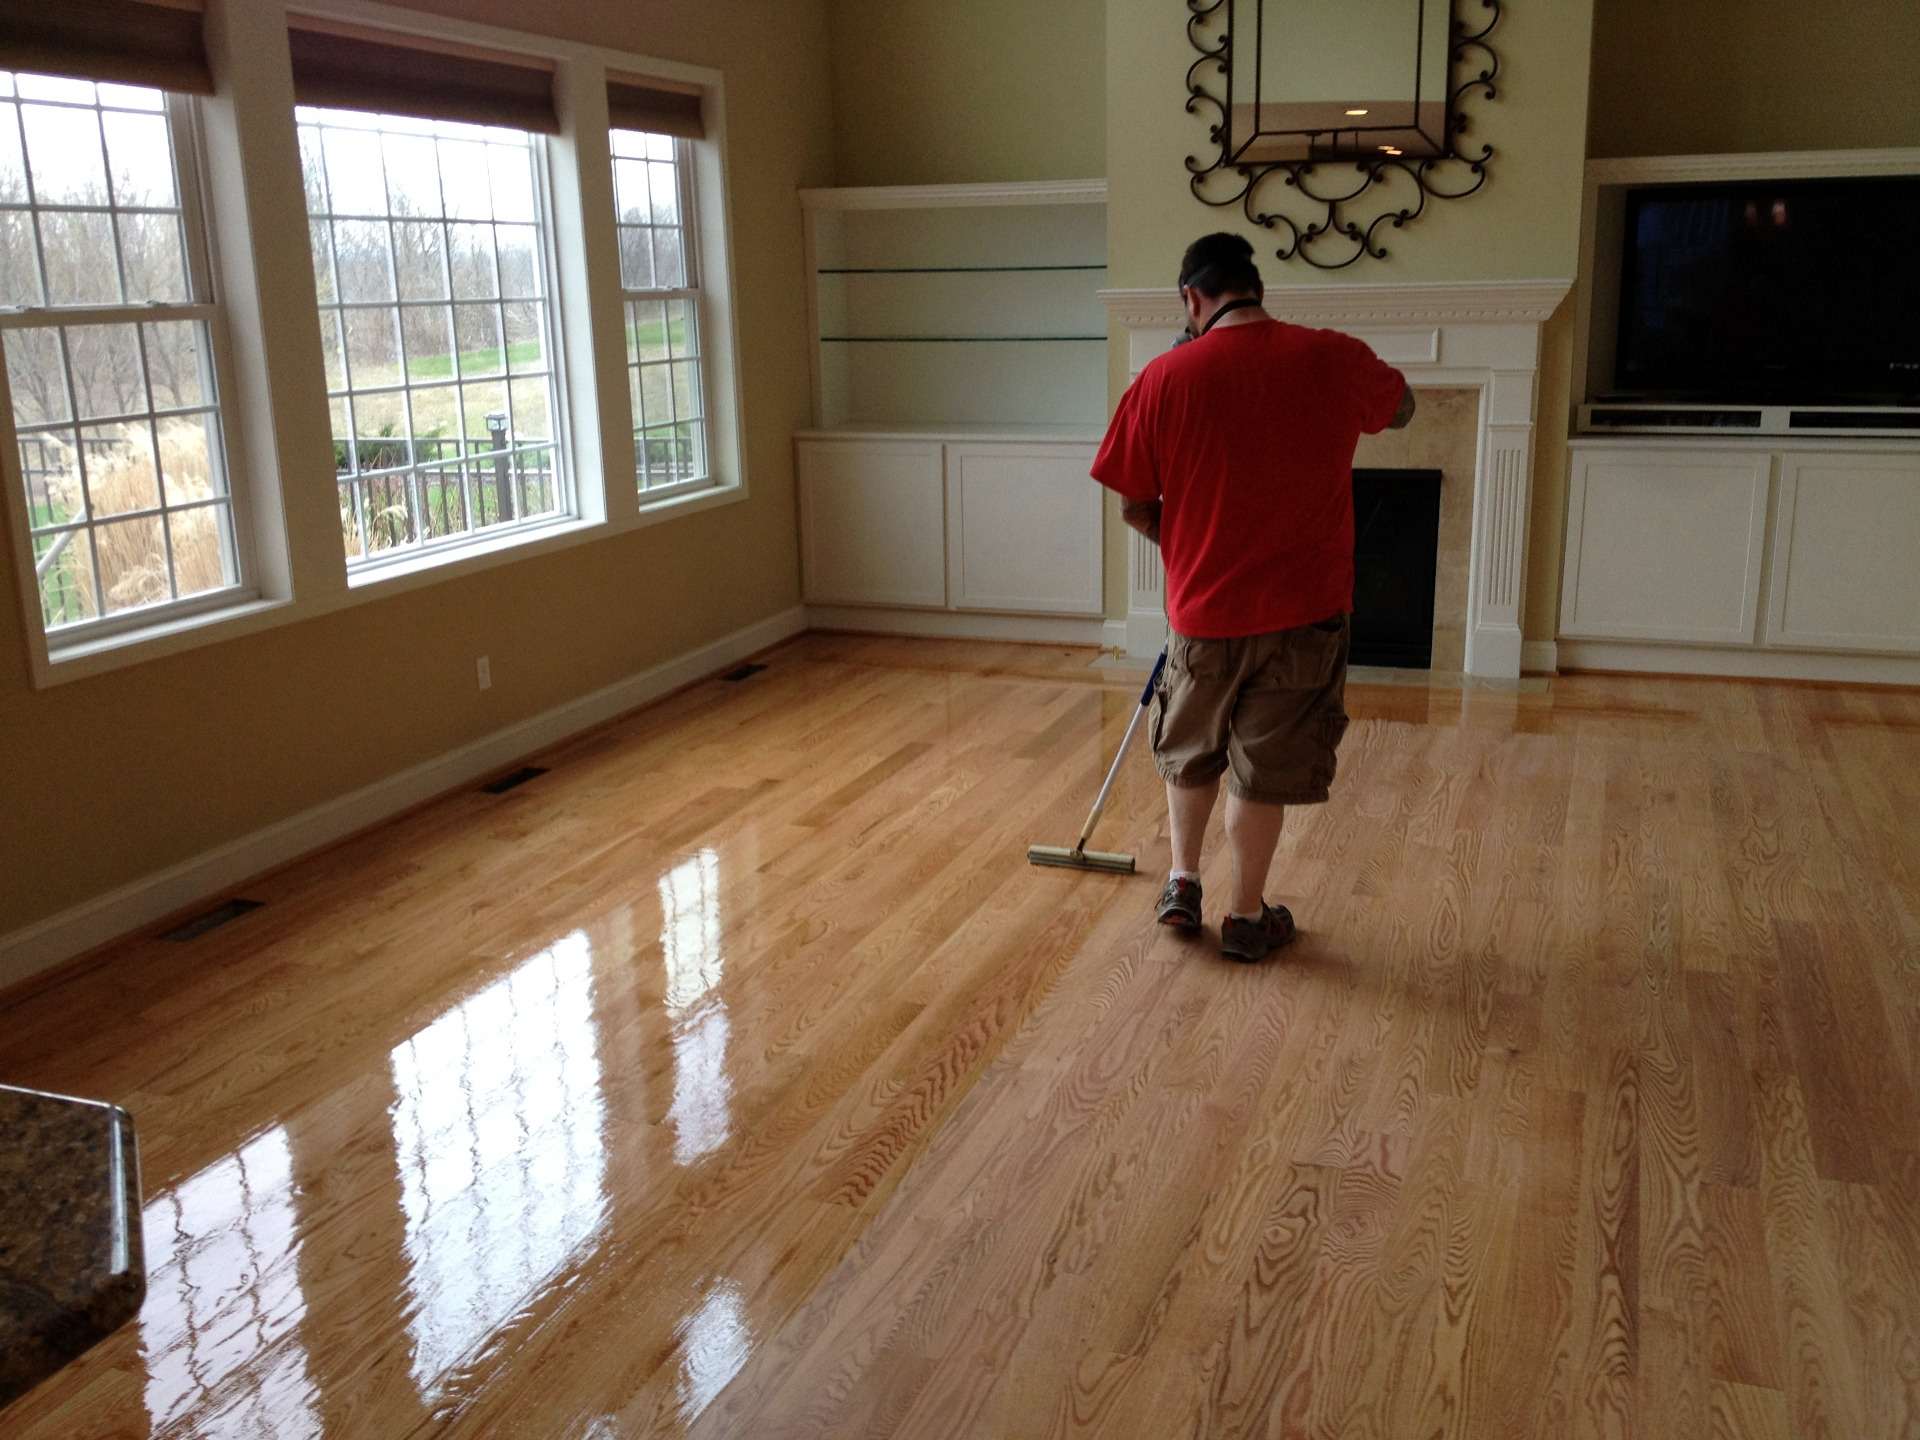 Permalink to Refurbishing Wood Floors